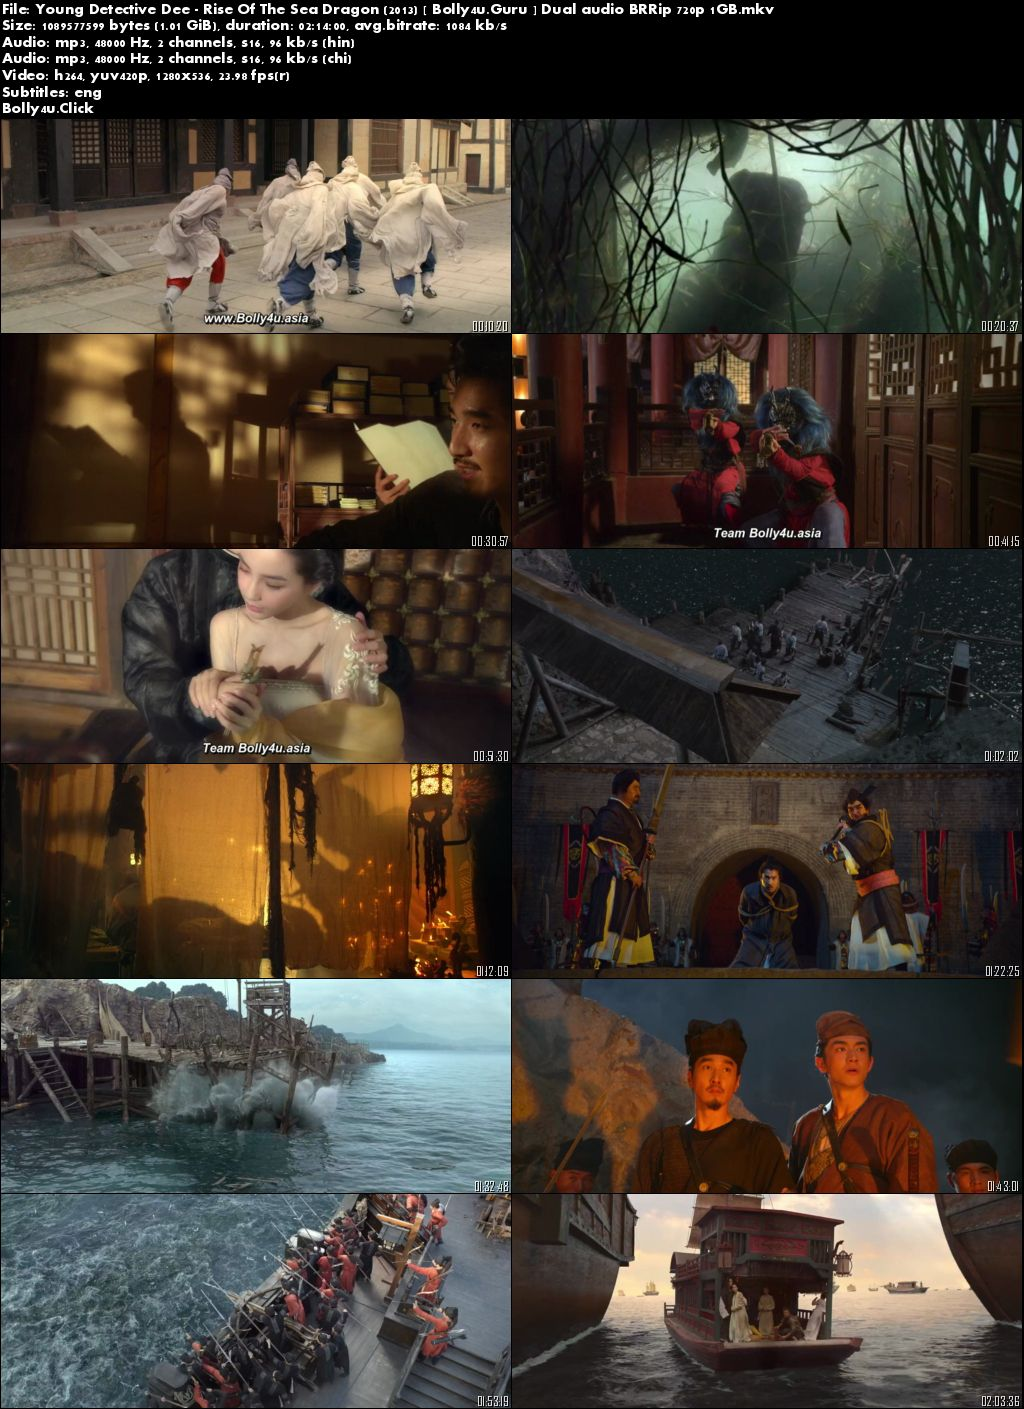 Download Film Young Detective Dee Rise Sea Dragon 2013